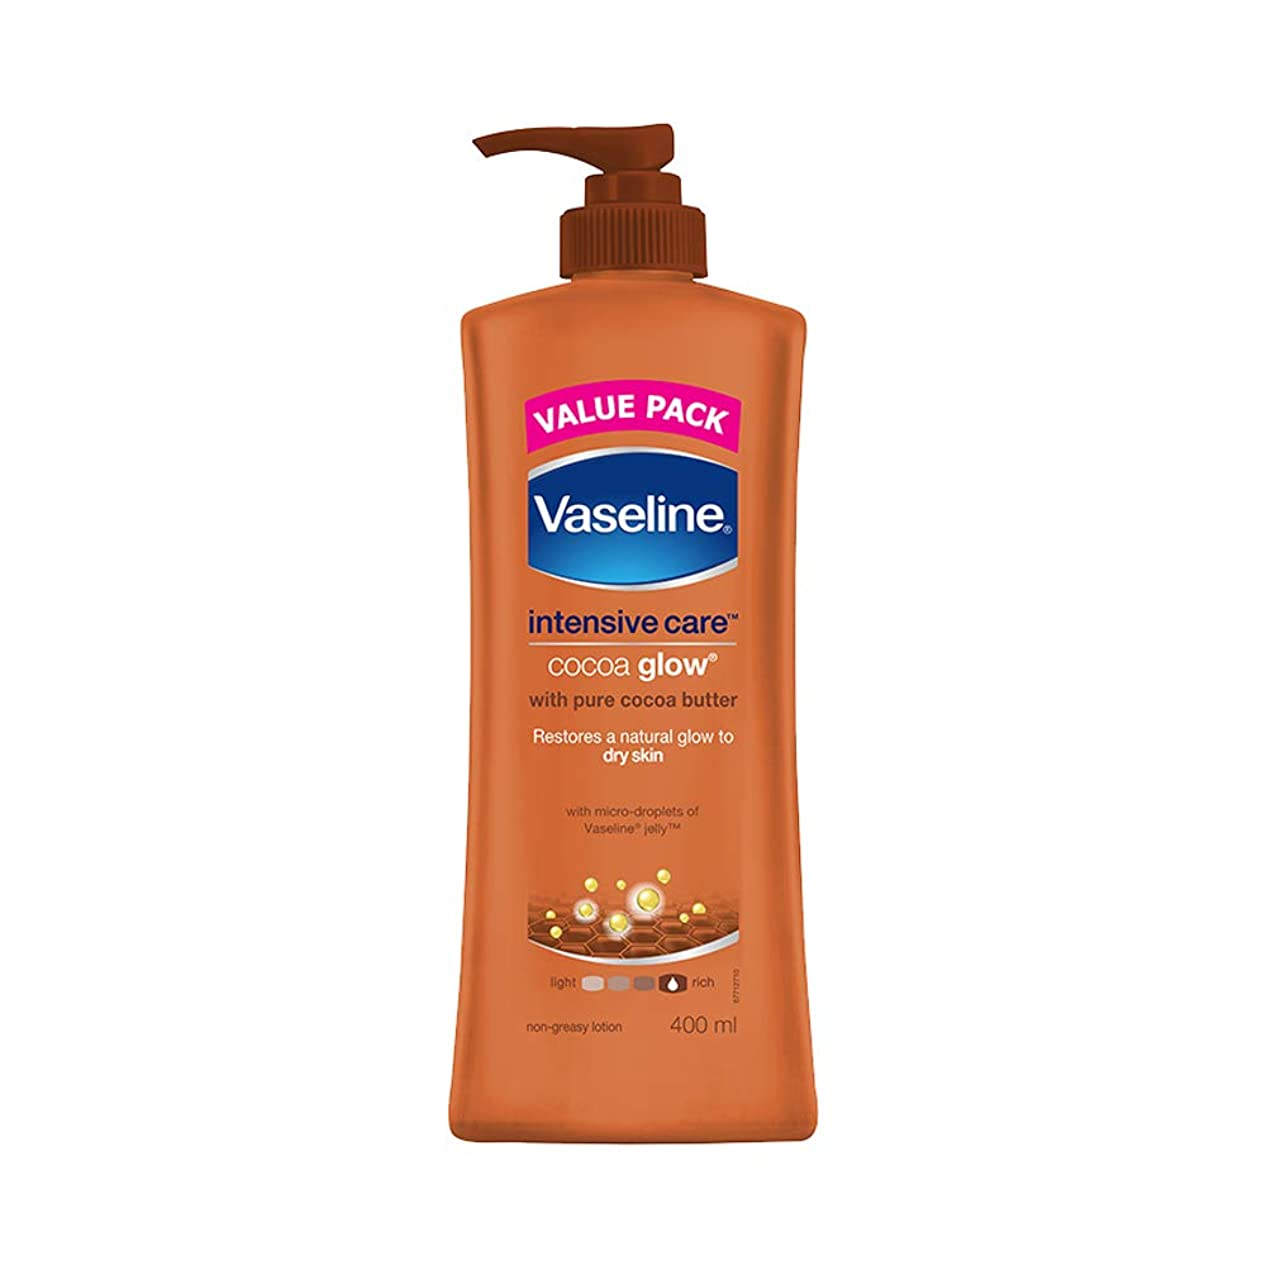 用心深い上フルーツ野菜Vaseline Intensive Care Cocoa Glow Body Lotion, 400 ml